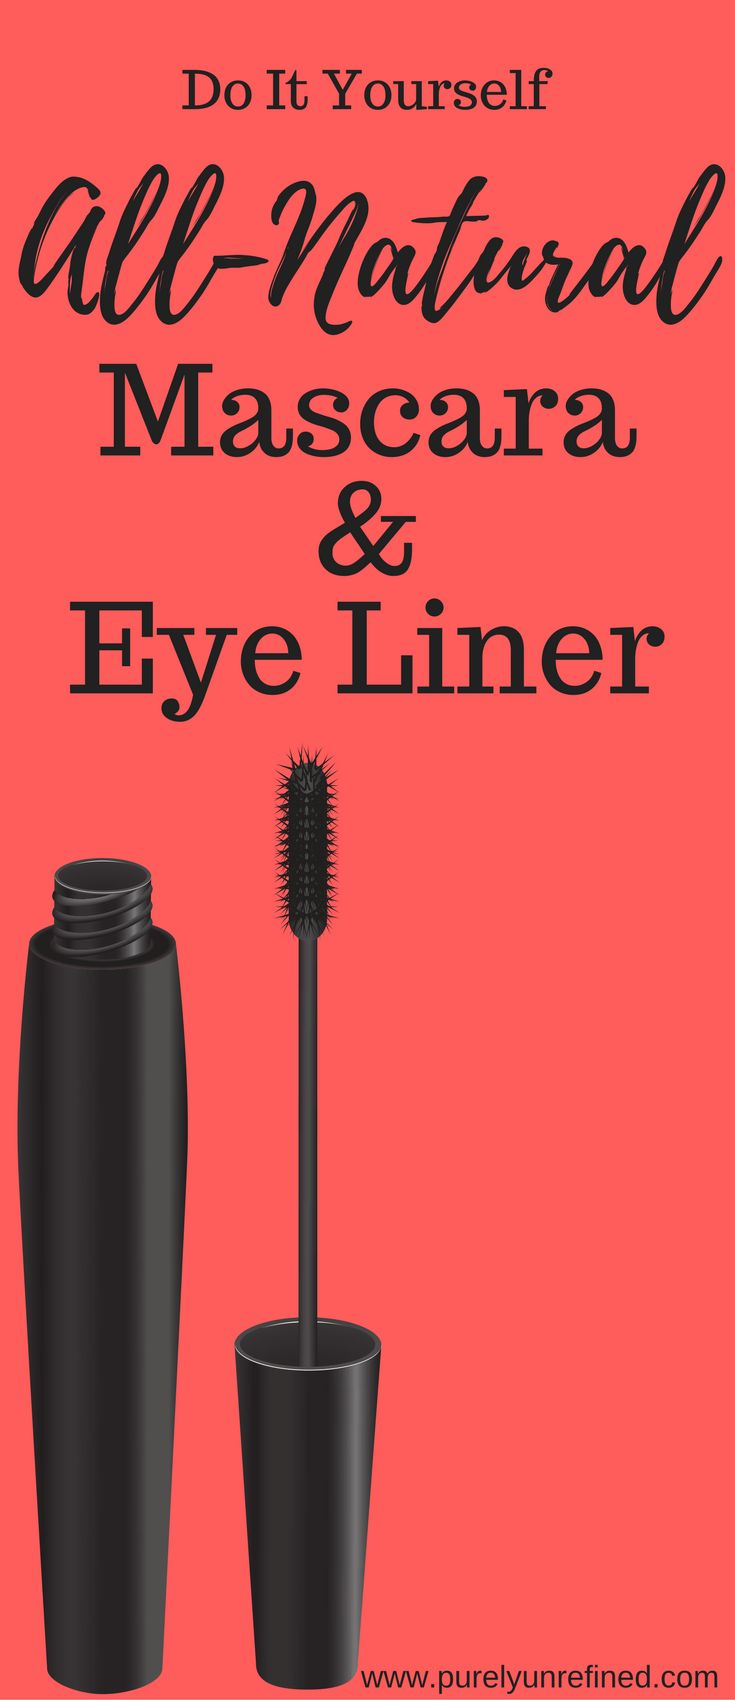 DIY All-Natural Mascara and Eye Liner | Safe Make-Up | Purely Unrefined